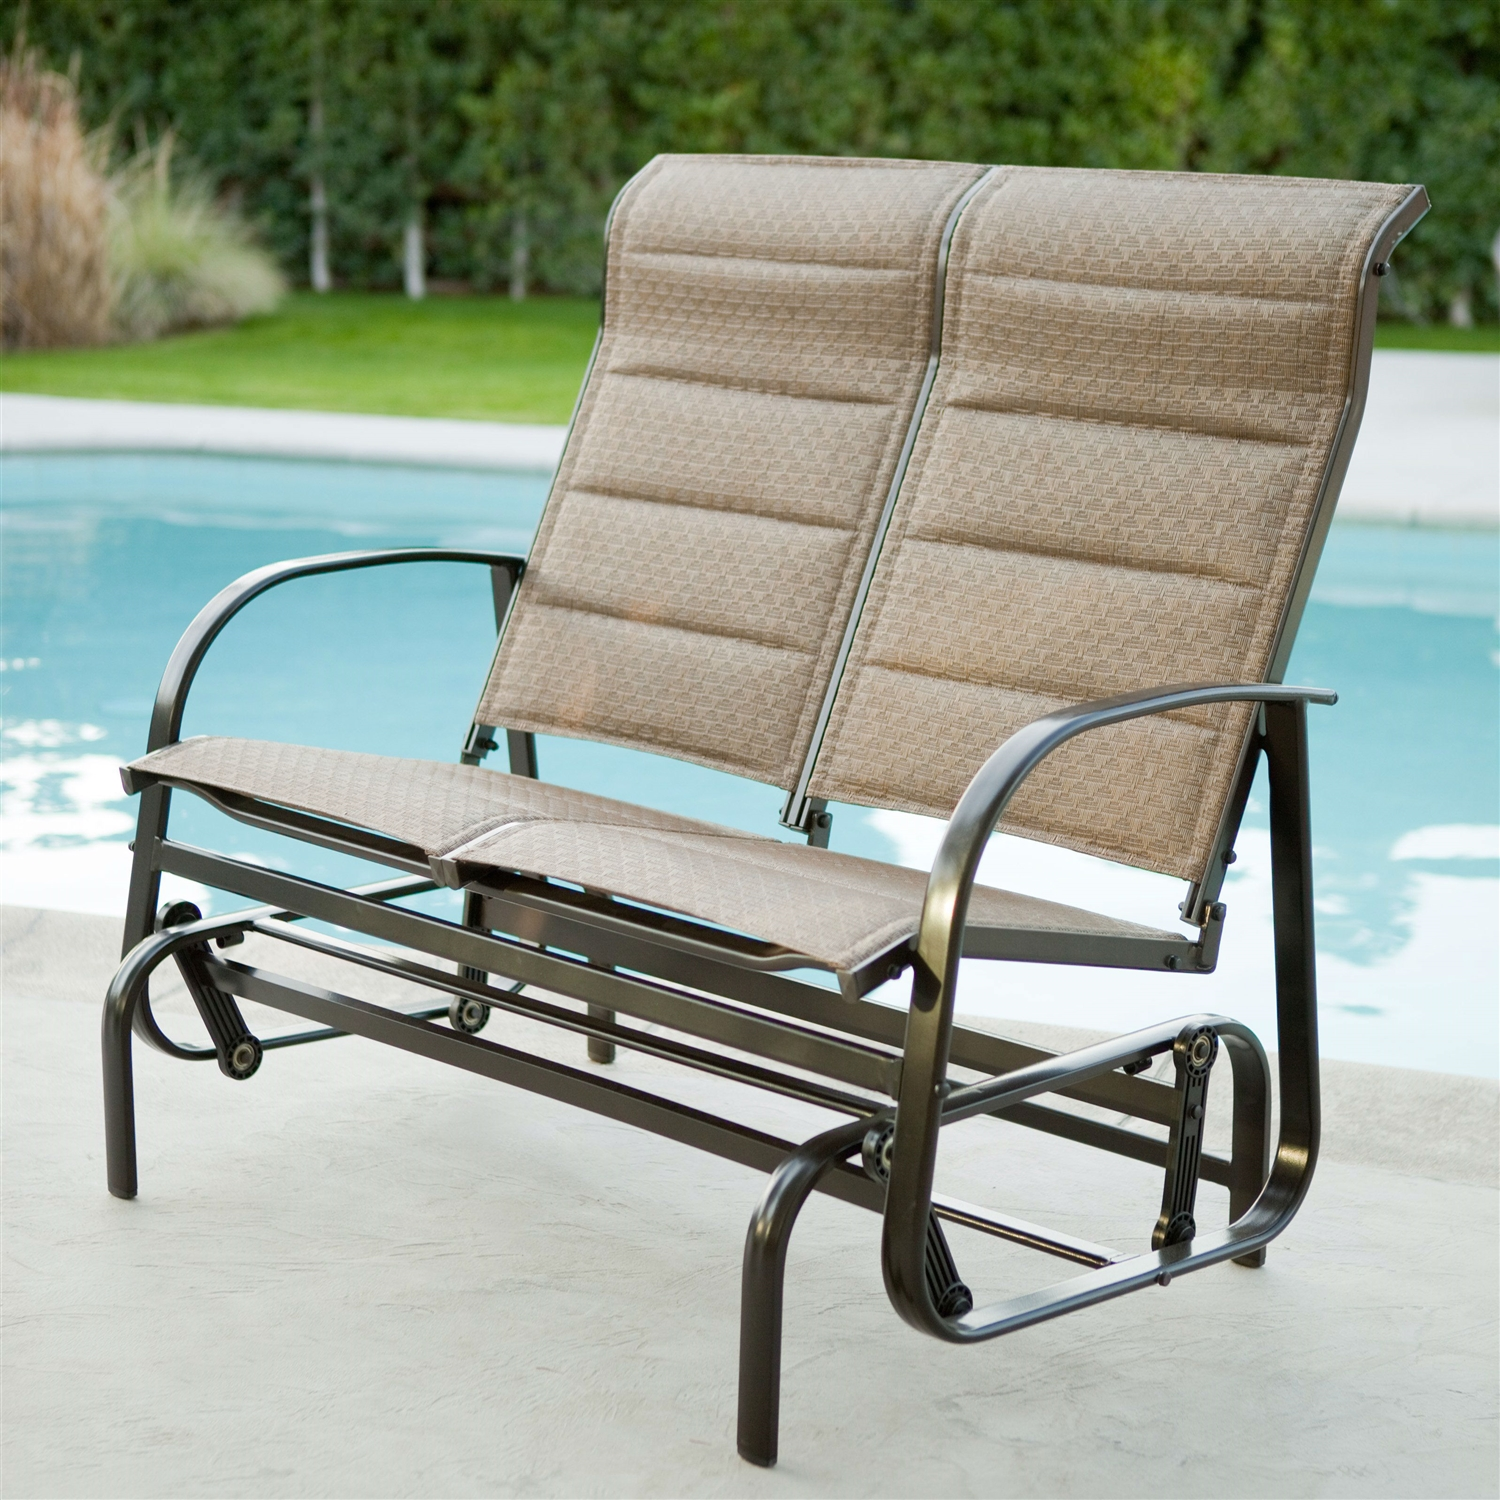 Weatherproof Adirondack Chairs Weatherproof Outdoor Loveseat Glider Chair With Padded Sling Seats In Bronze